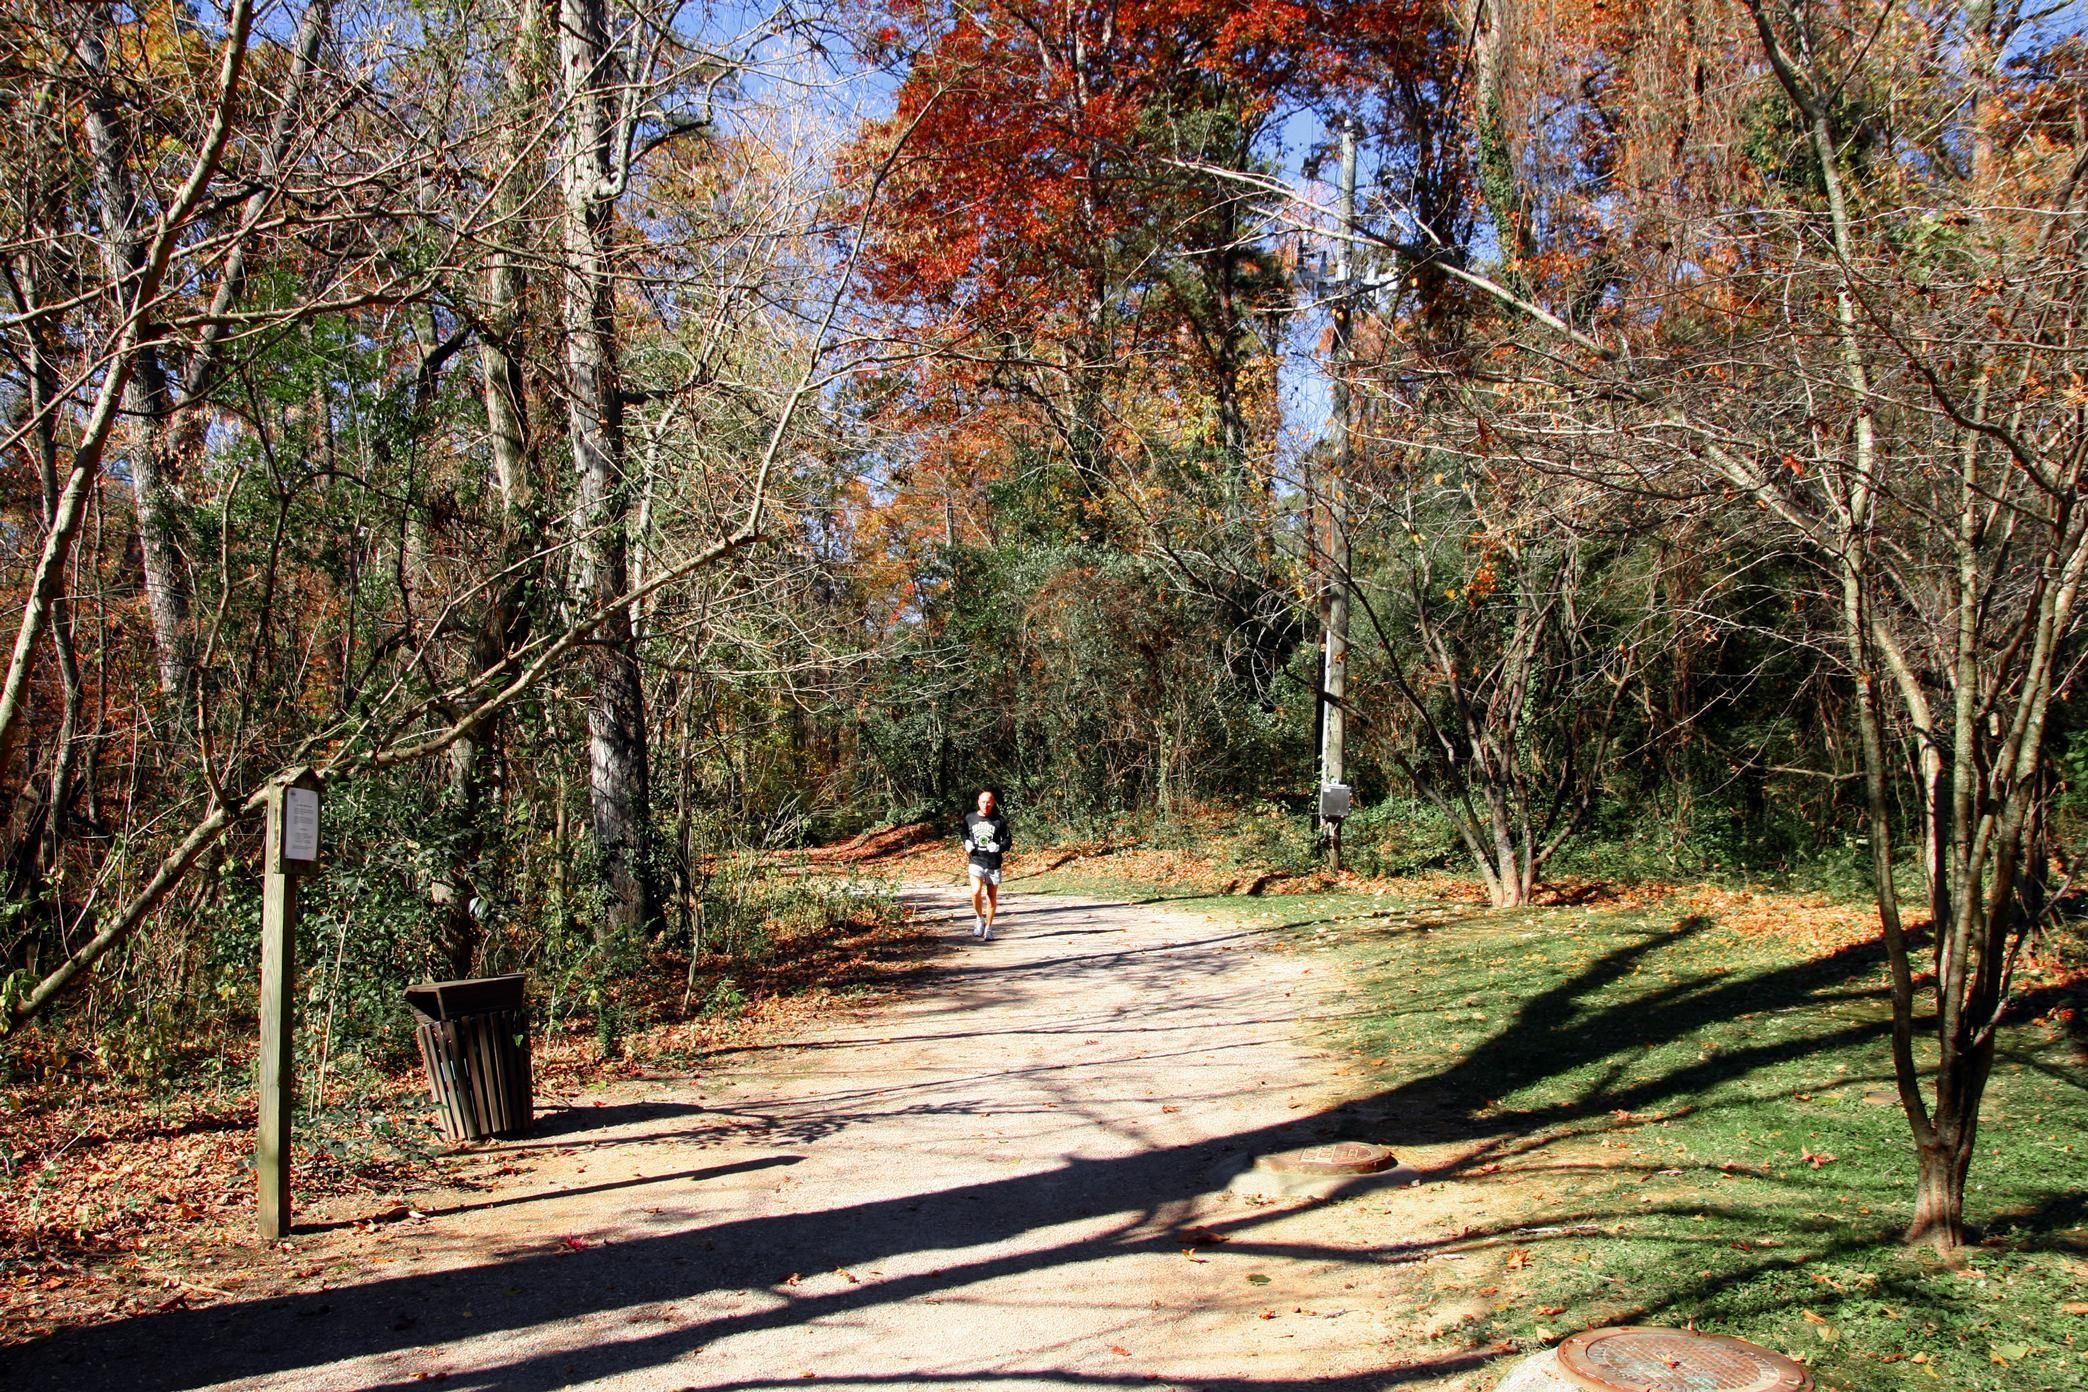 Running Trail in the Fall